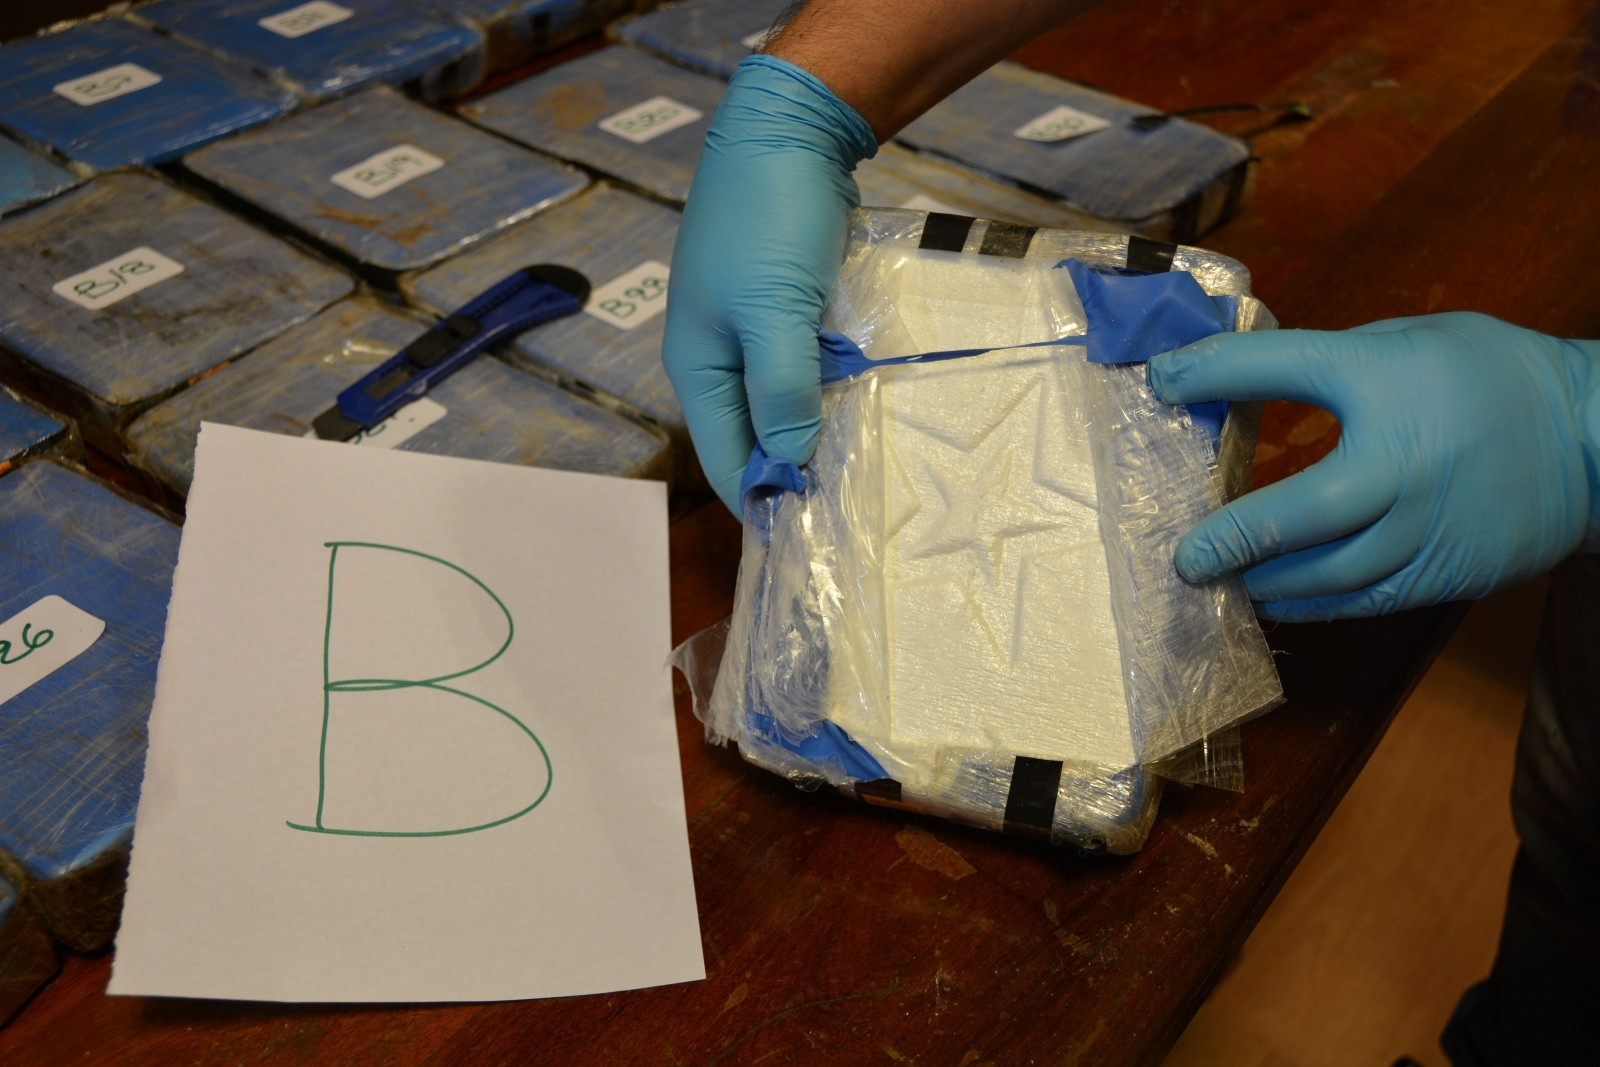 Russian Embassy in Argentina Embroiled in Cocaine Smuggling Scandal